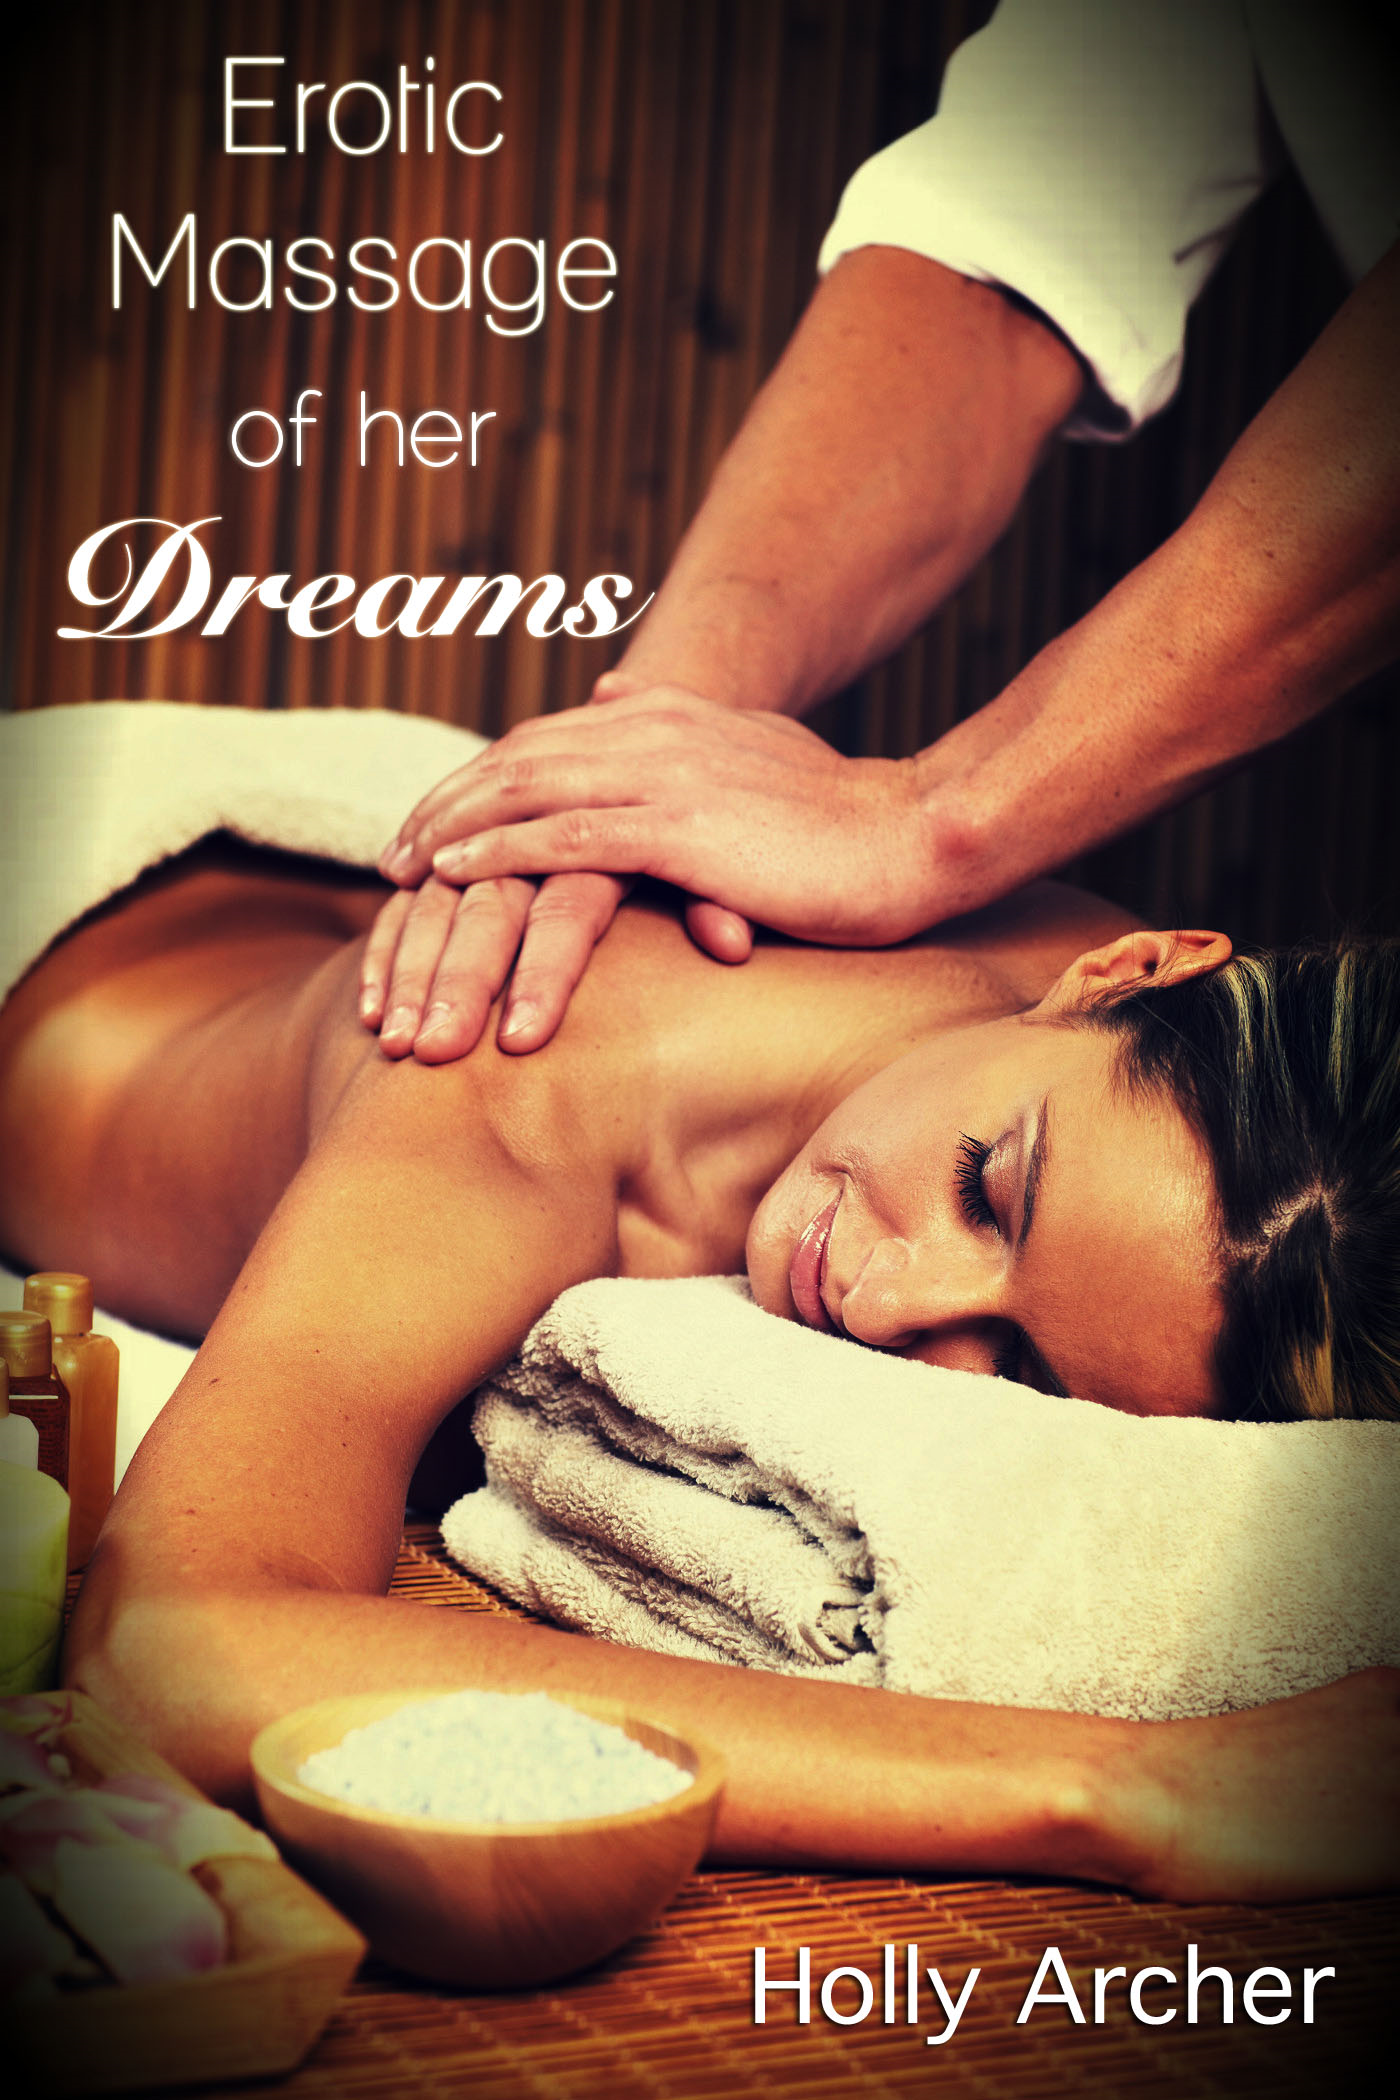 Erotic Massage of her Dreams